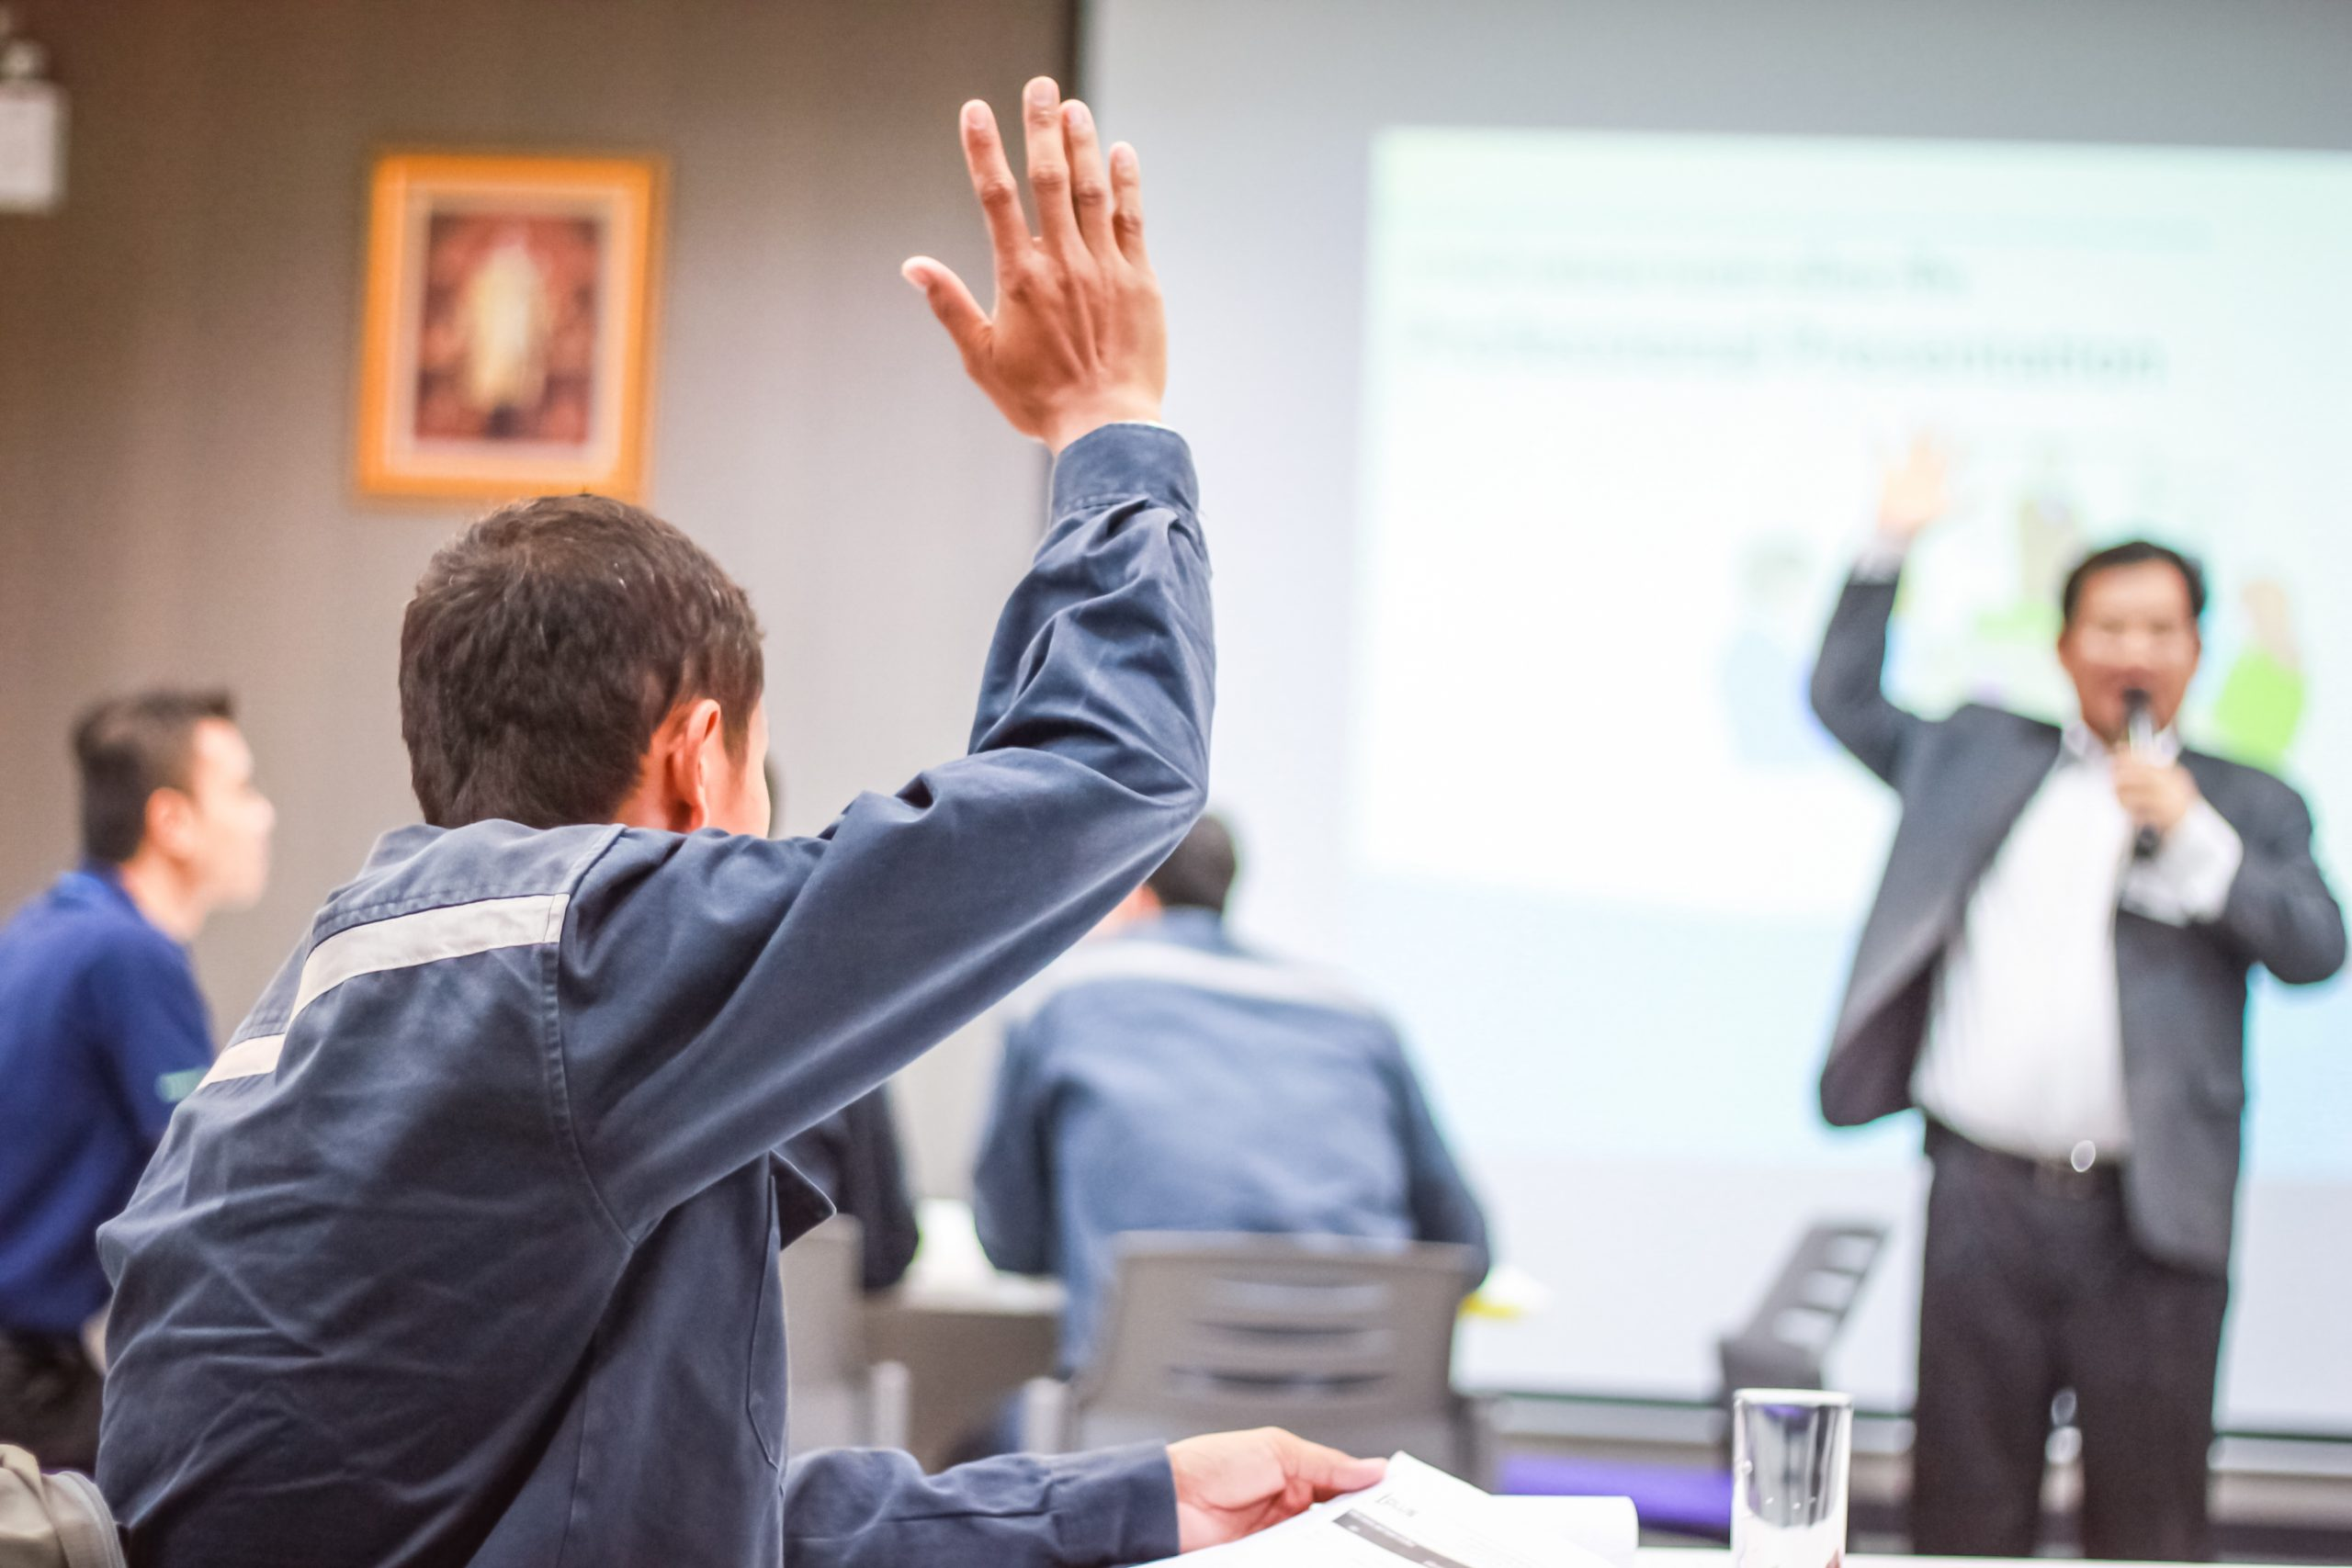 Student with raised hand in classroom